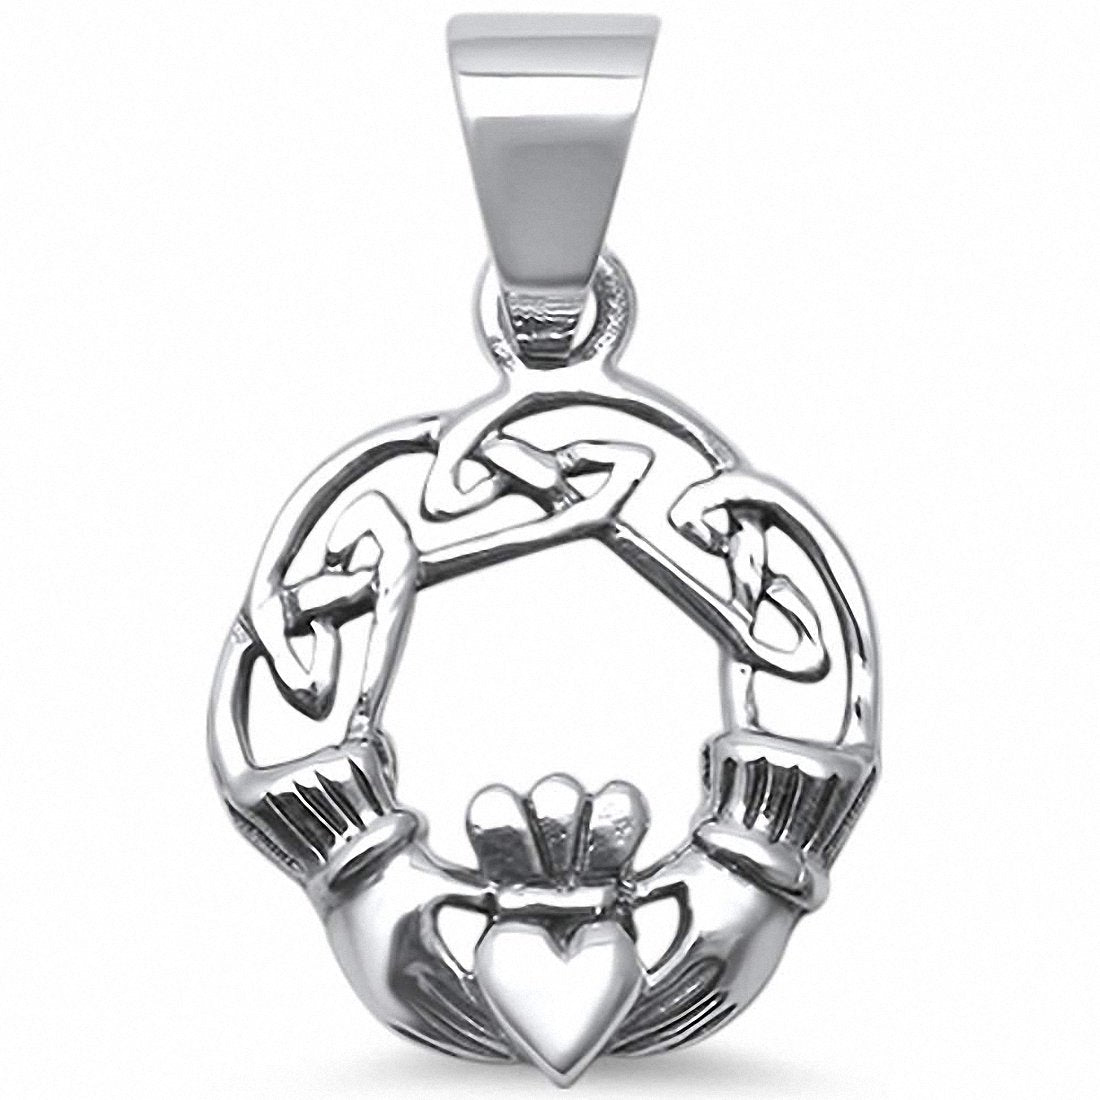 Celtic Heart Claddagh Pendant 925 Sterling Silver Choose Color